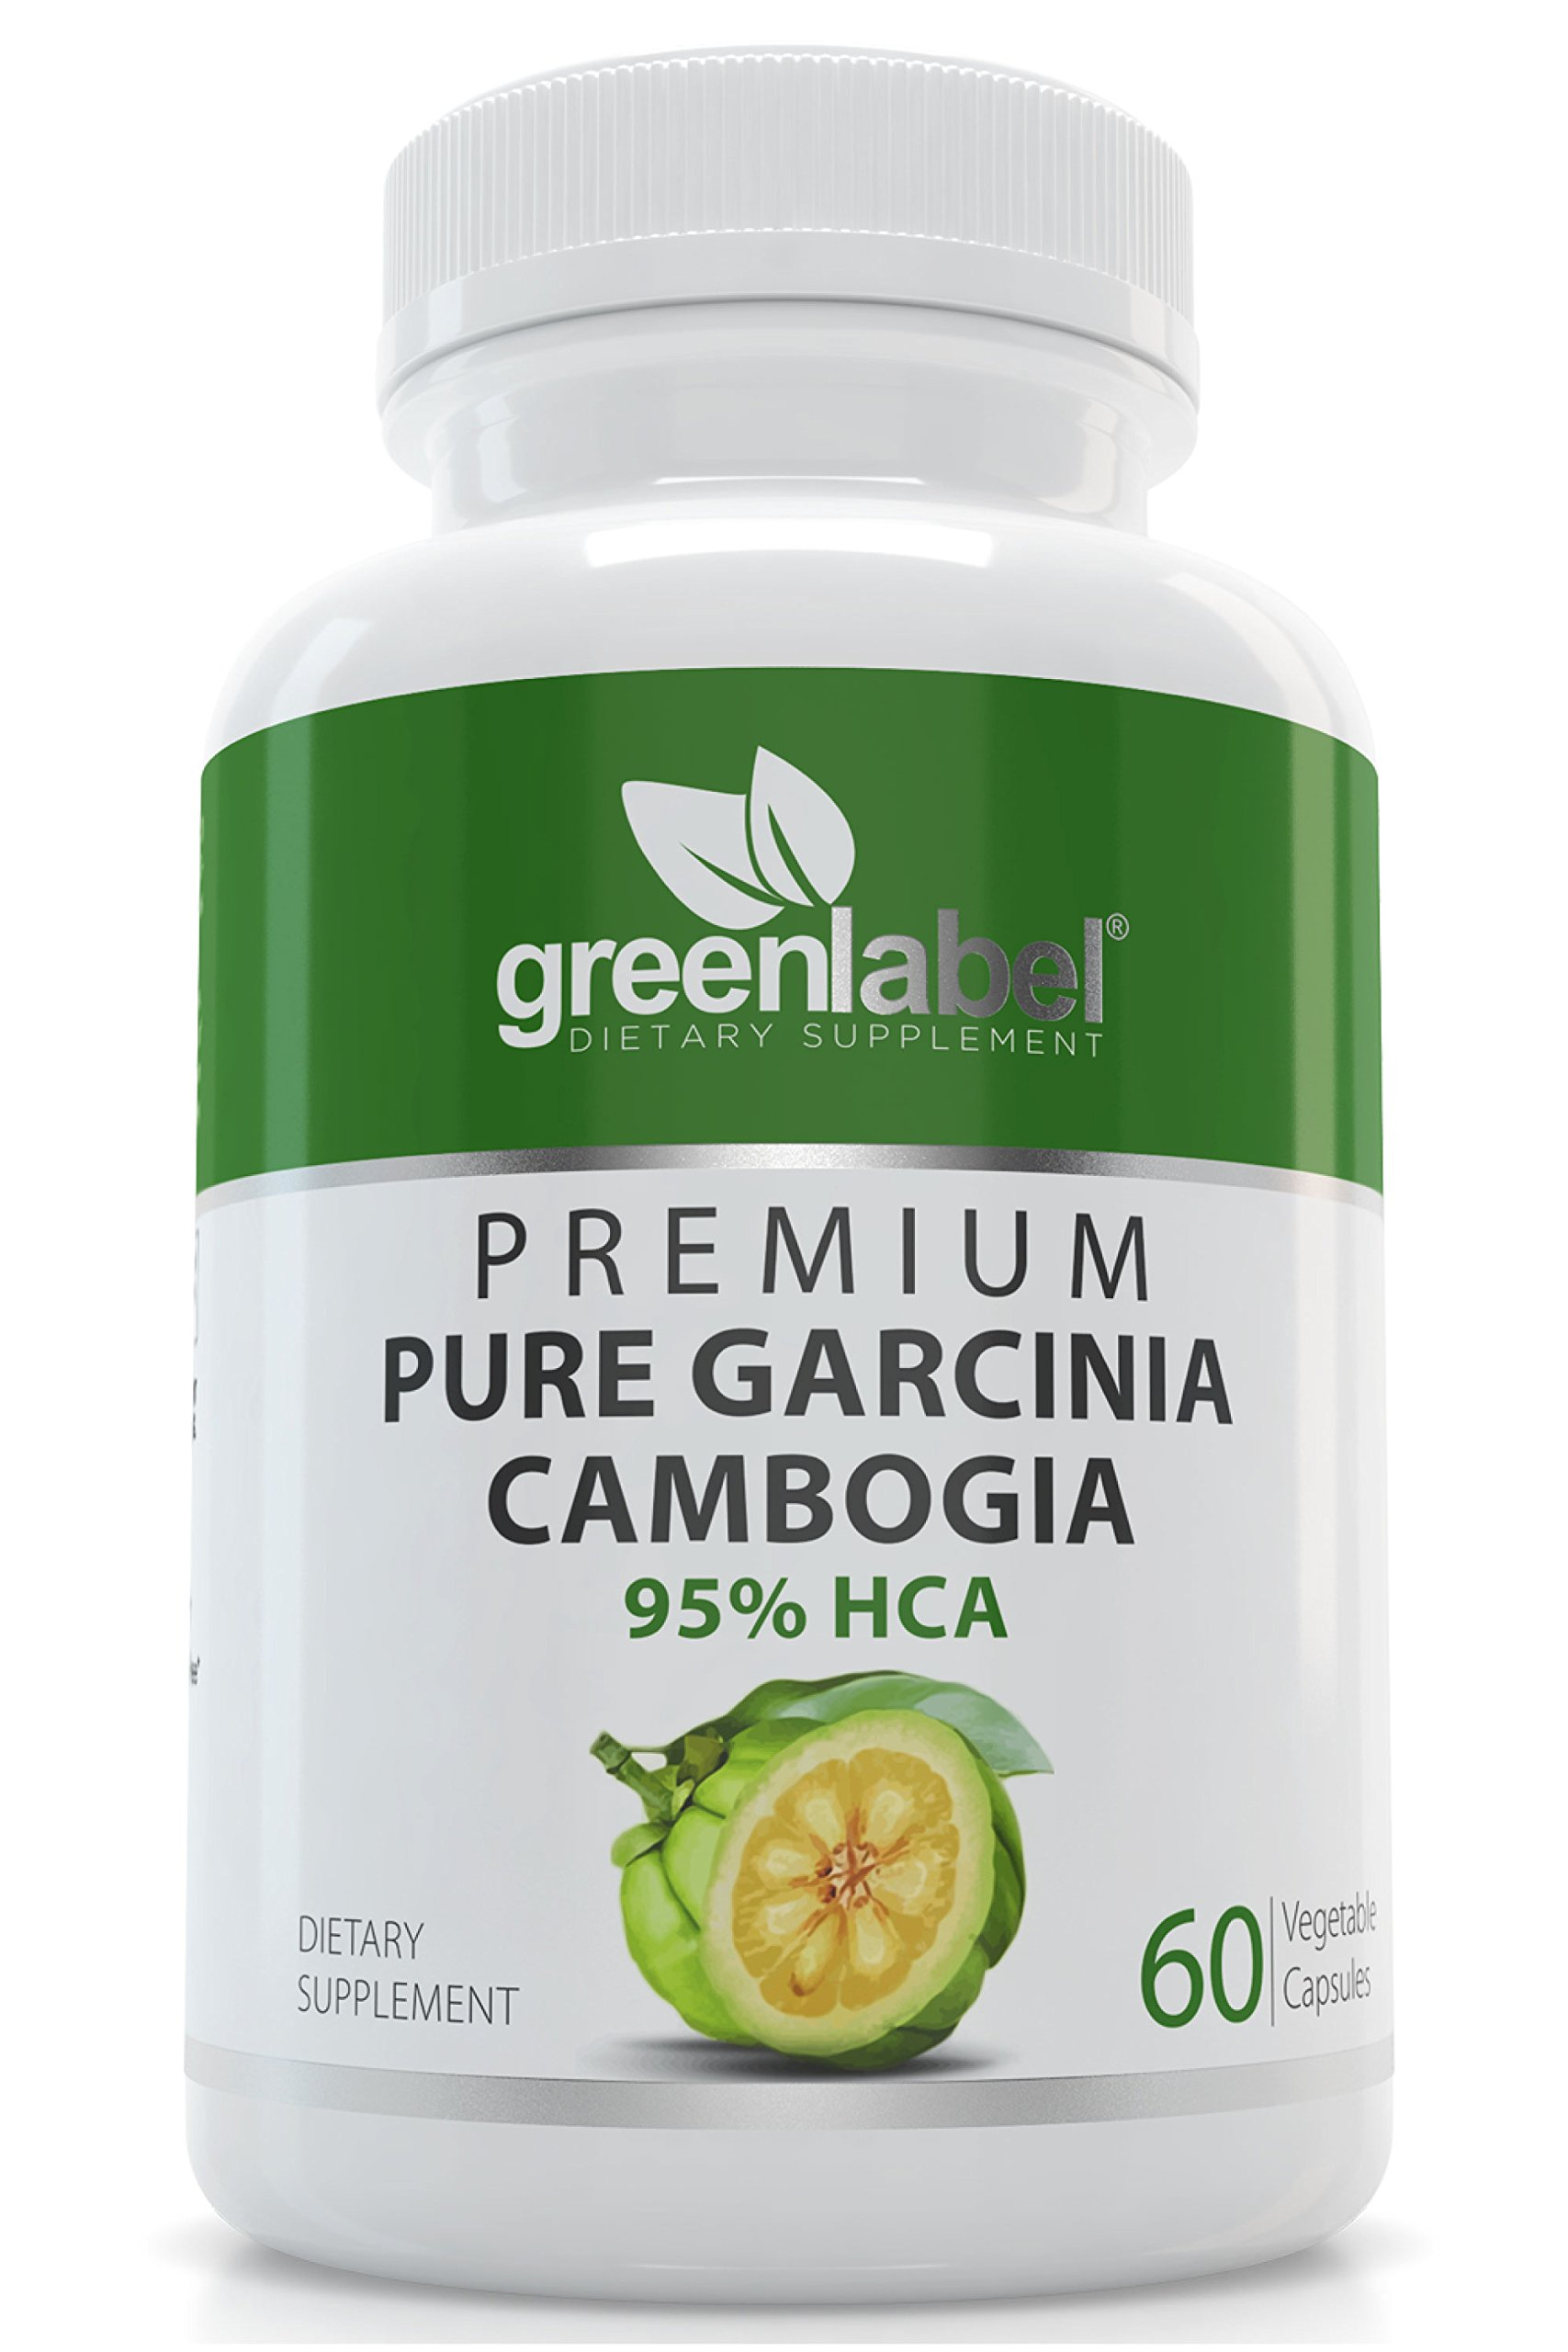 Garcinia Cambogia ***100% Pure Extract + 95% HCA, Natural Fast Acting Fat Burner, Carb Blocker + Slimming Aid, Best Diet Supplement, Appetite Suppressant + Weight Loss Pills, For Women + Men.